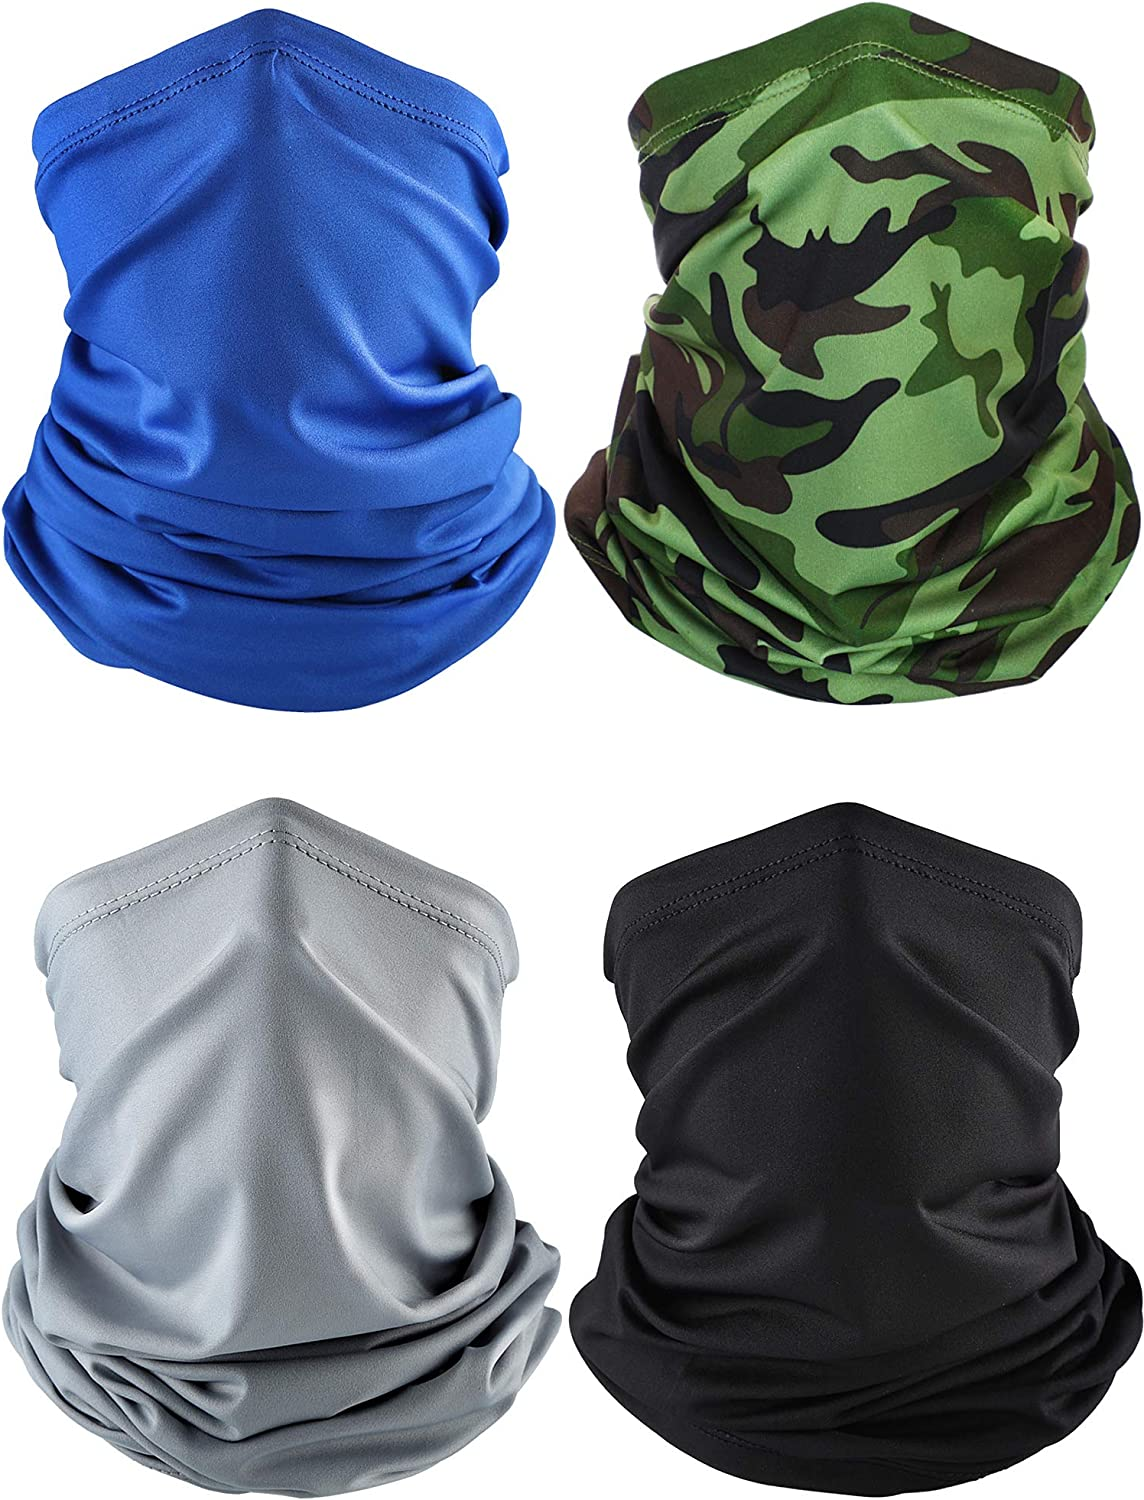 4 Pieces Bandana Face Mask Thin Neck Gaiter Cooling Sunblock Face Scarf